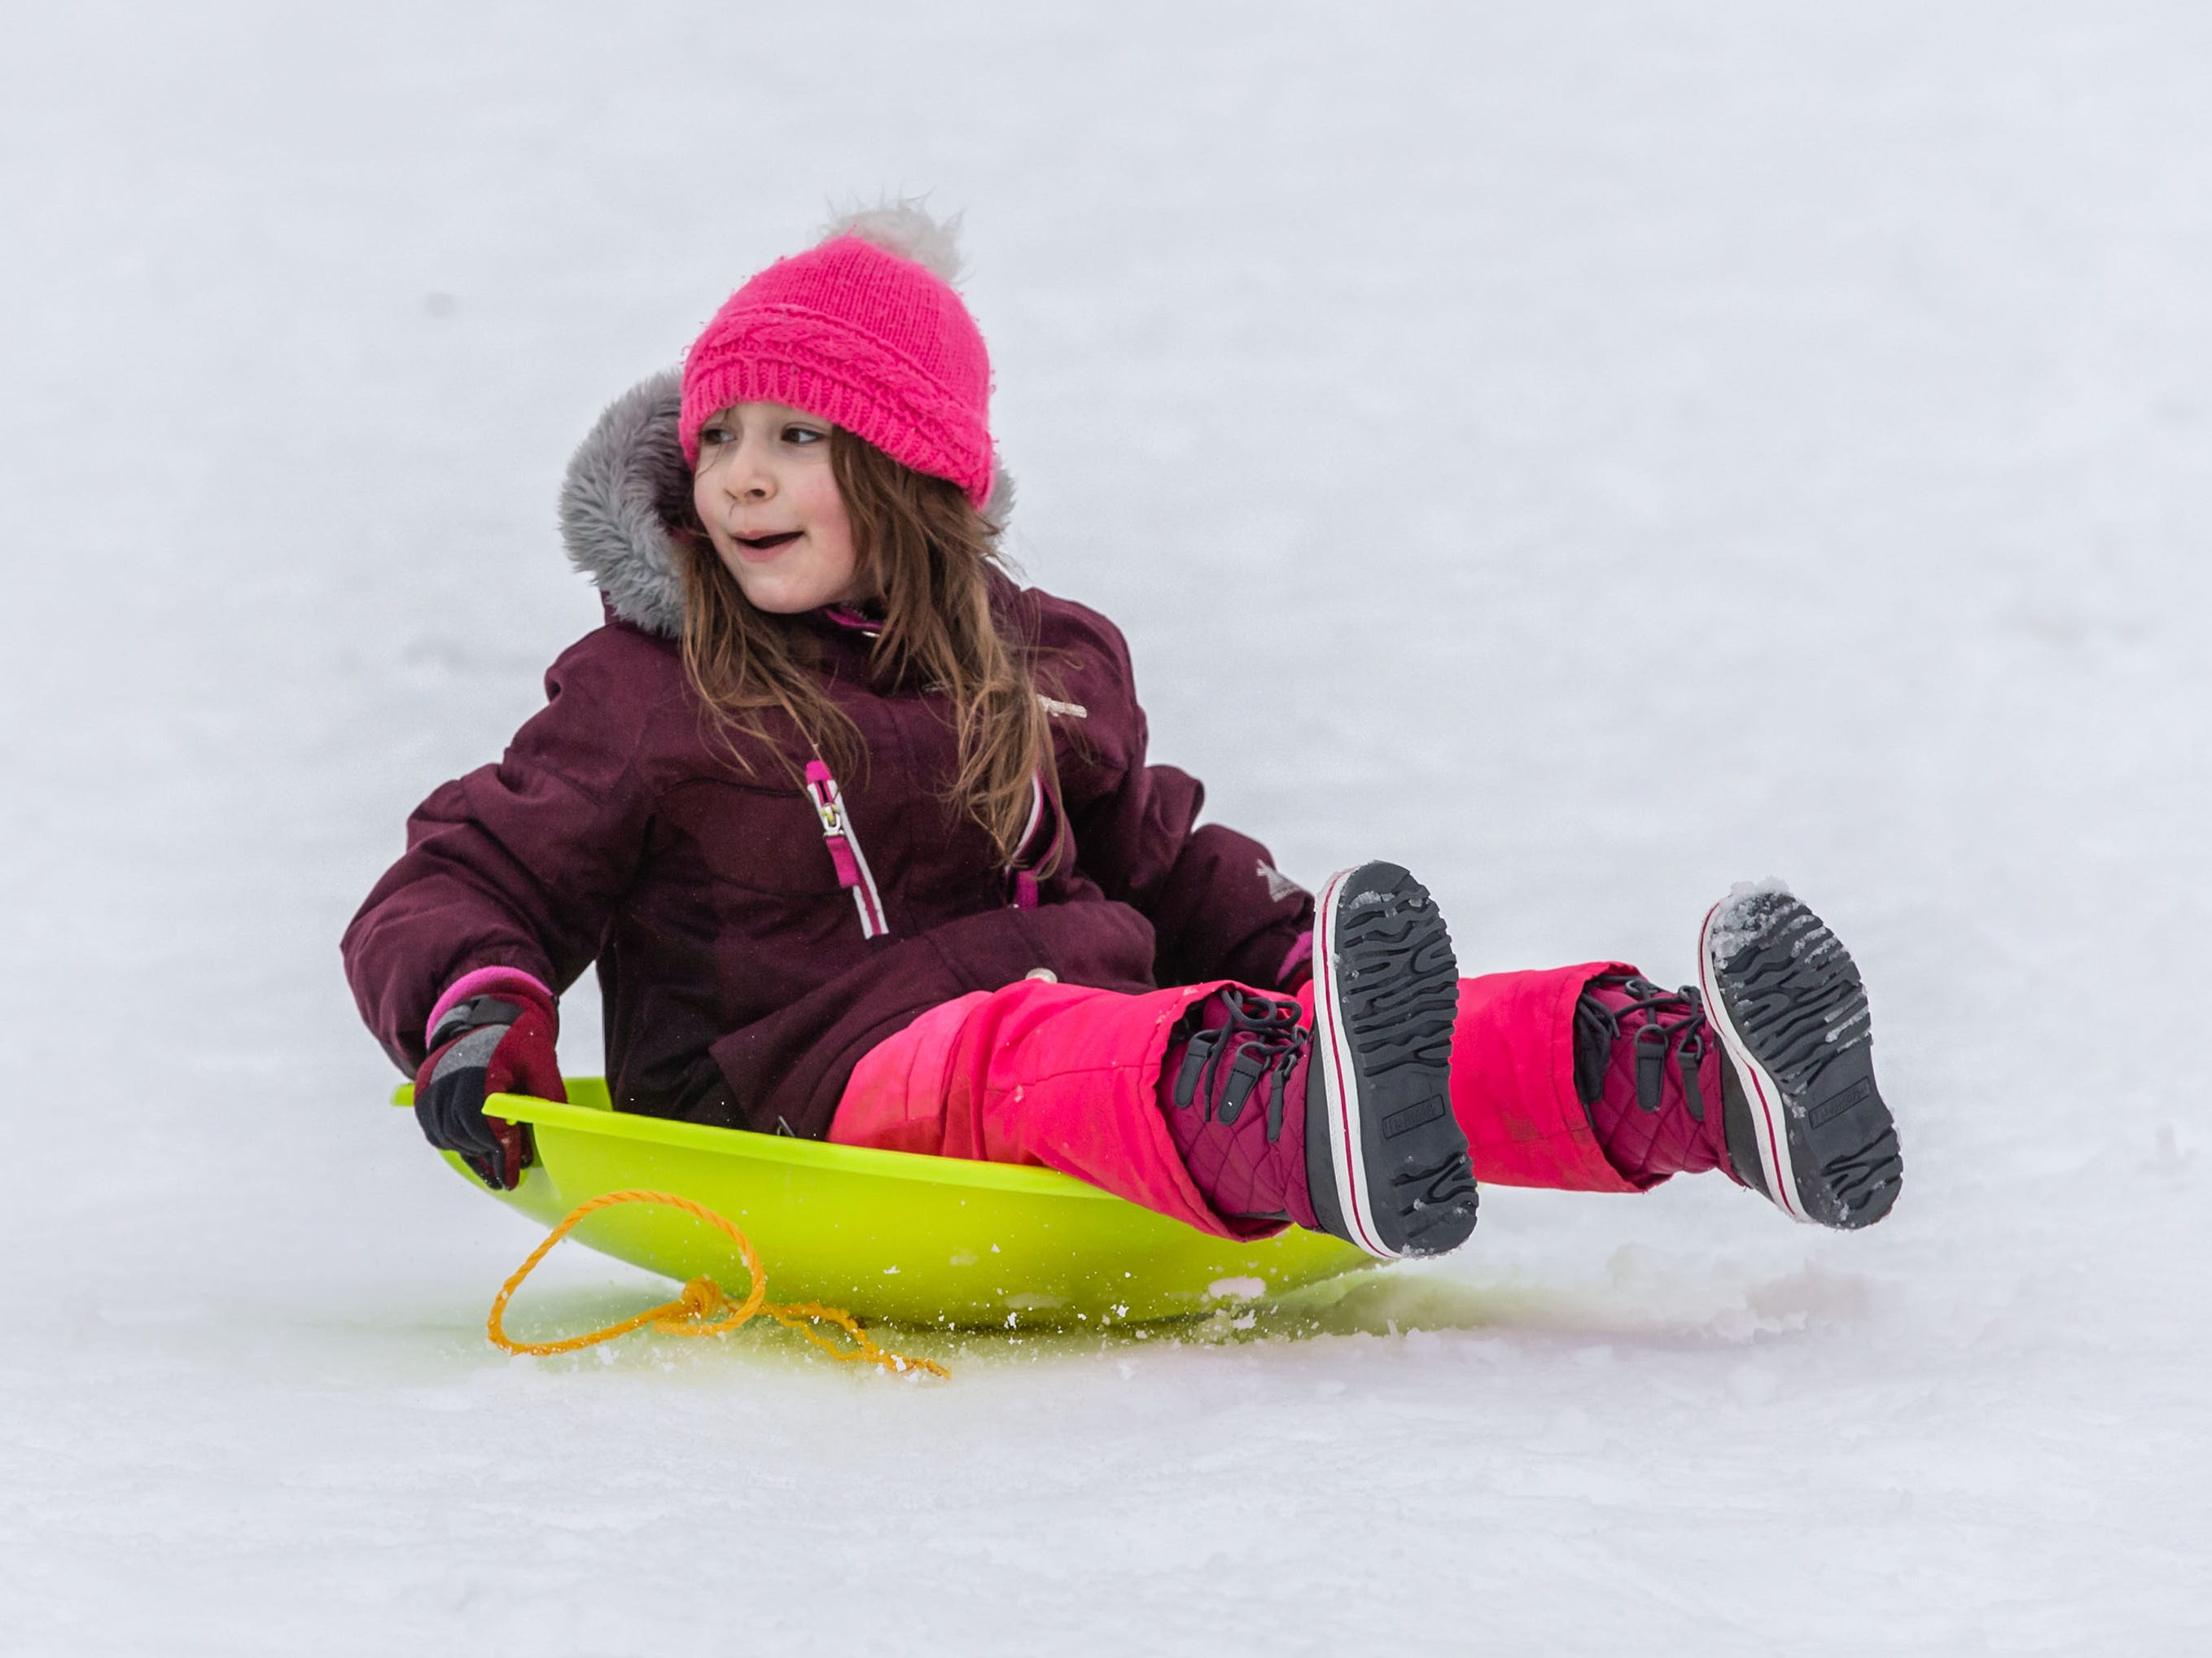 Joslin Albiter, 6, of Lannon zips down the hill backwards during the annual sledding party in Sussex Village Park on Saturday, Feb. 2, 2019. The family-friendly event, hosted by the Sussex Parks & Recreation Department, features sledding, music, crafts, refreshments and a snowman contest.